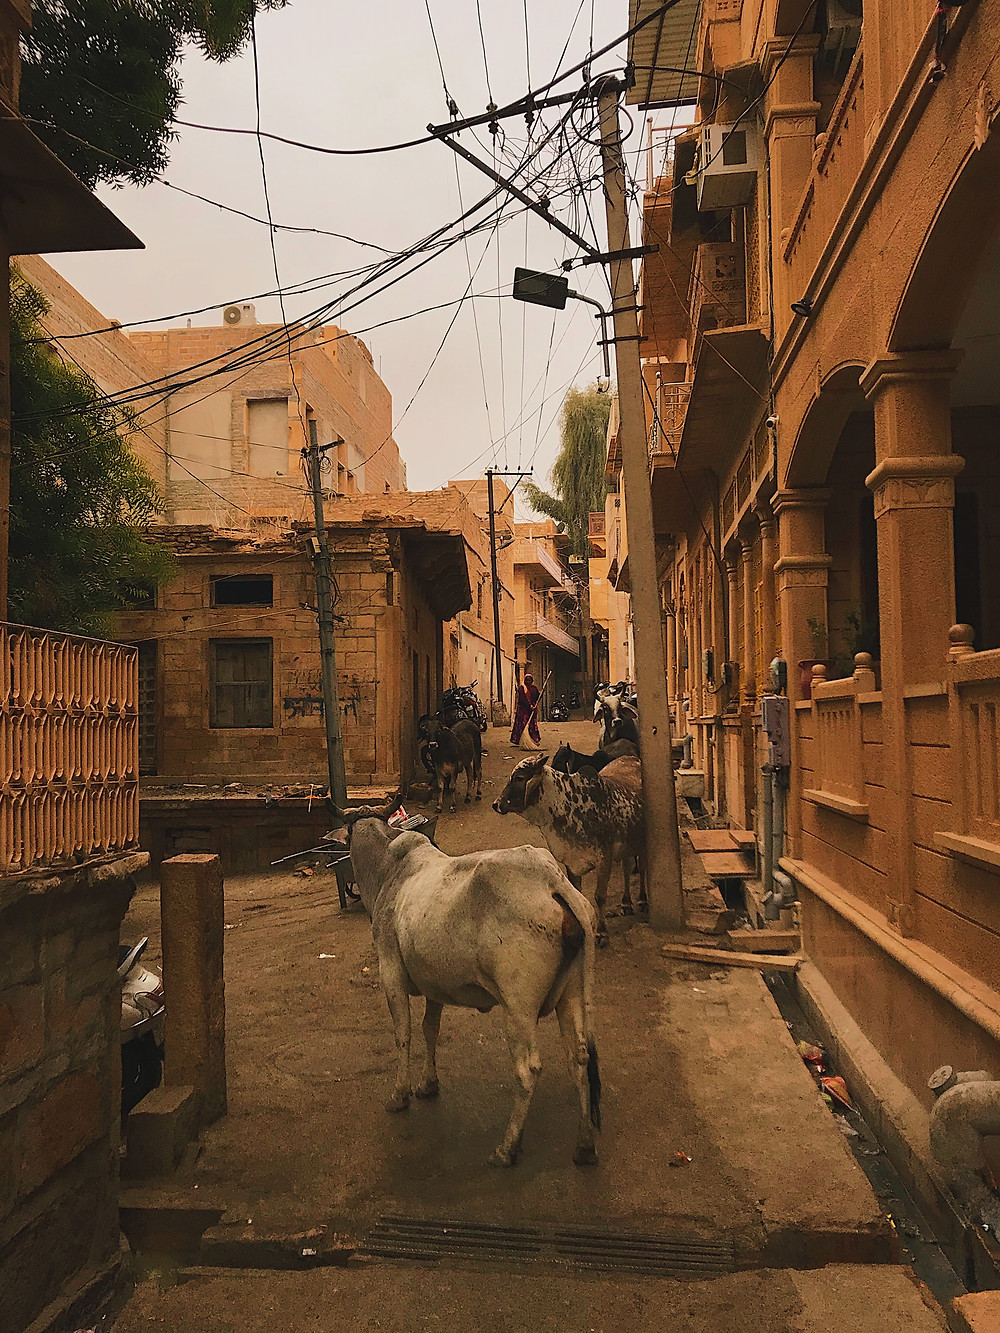 Stray cows in the streets of Jaisalmer, Rajasthan, India